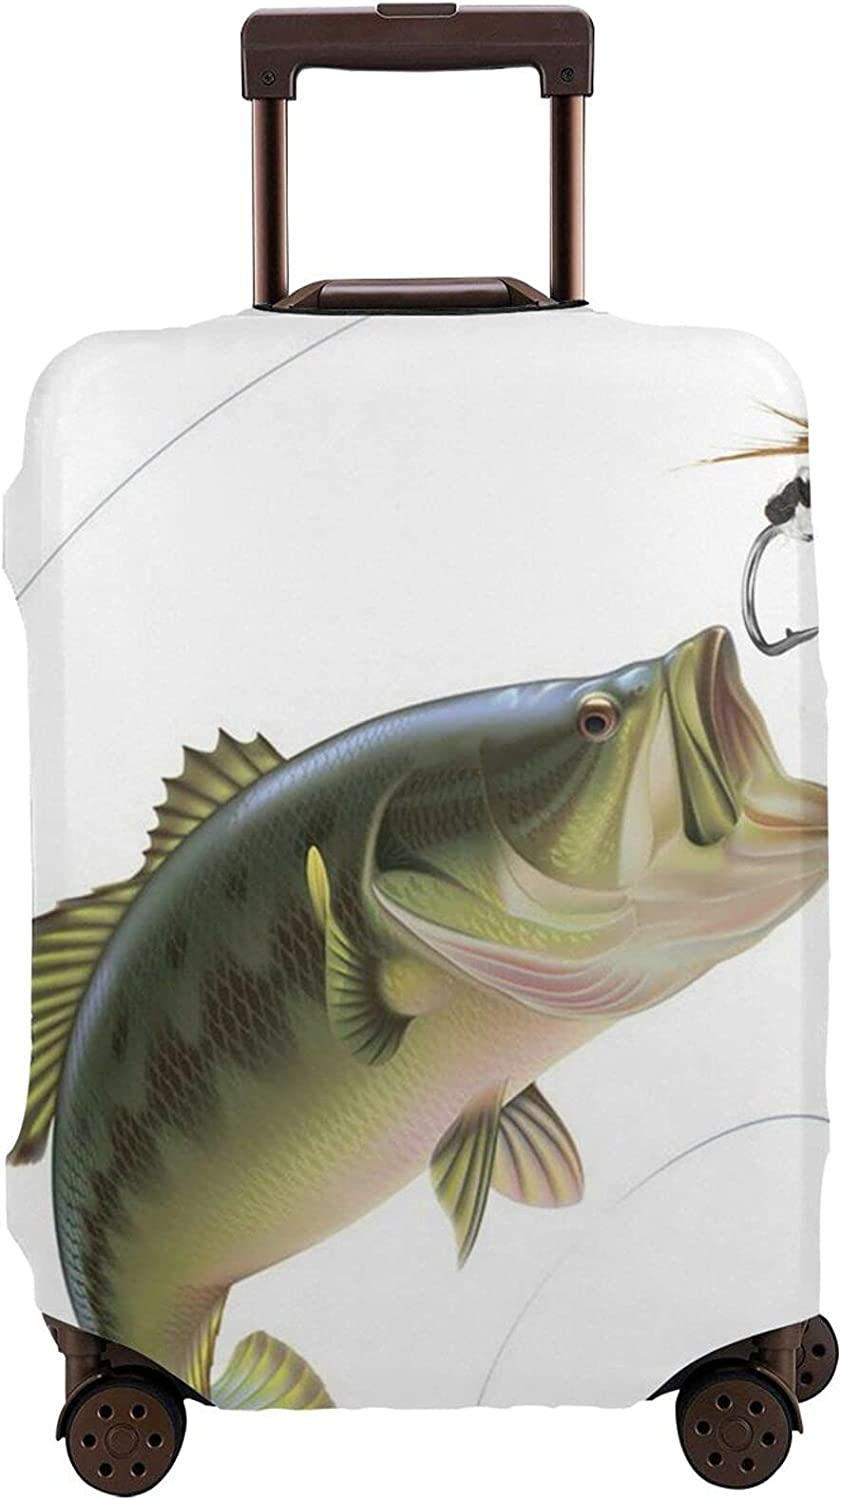 Male Popular Fishing With Bait And Fish Seasonal Wrap Introduction Cover P Luggage Protector Travel